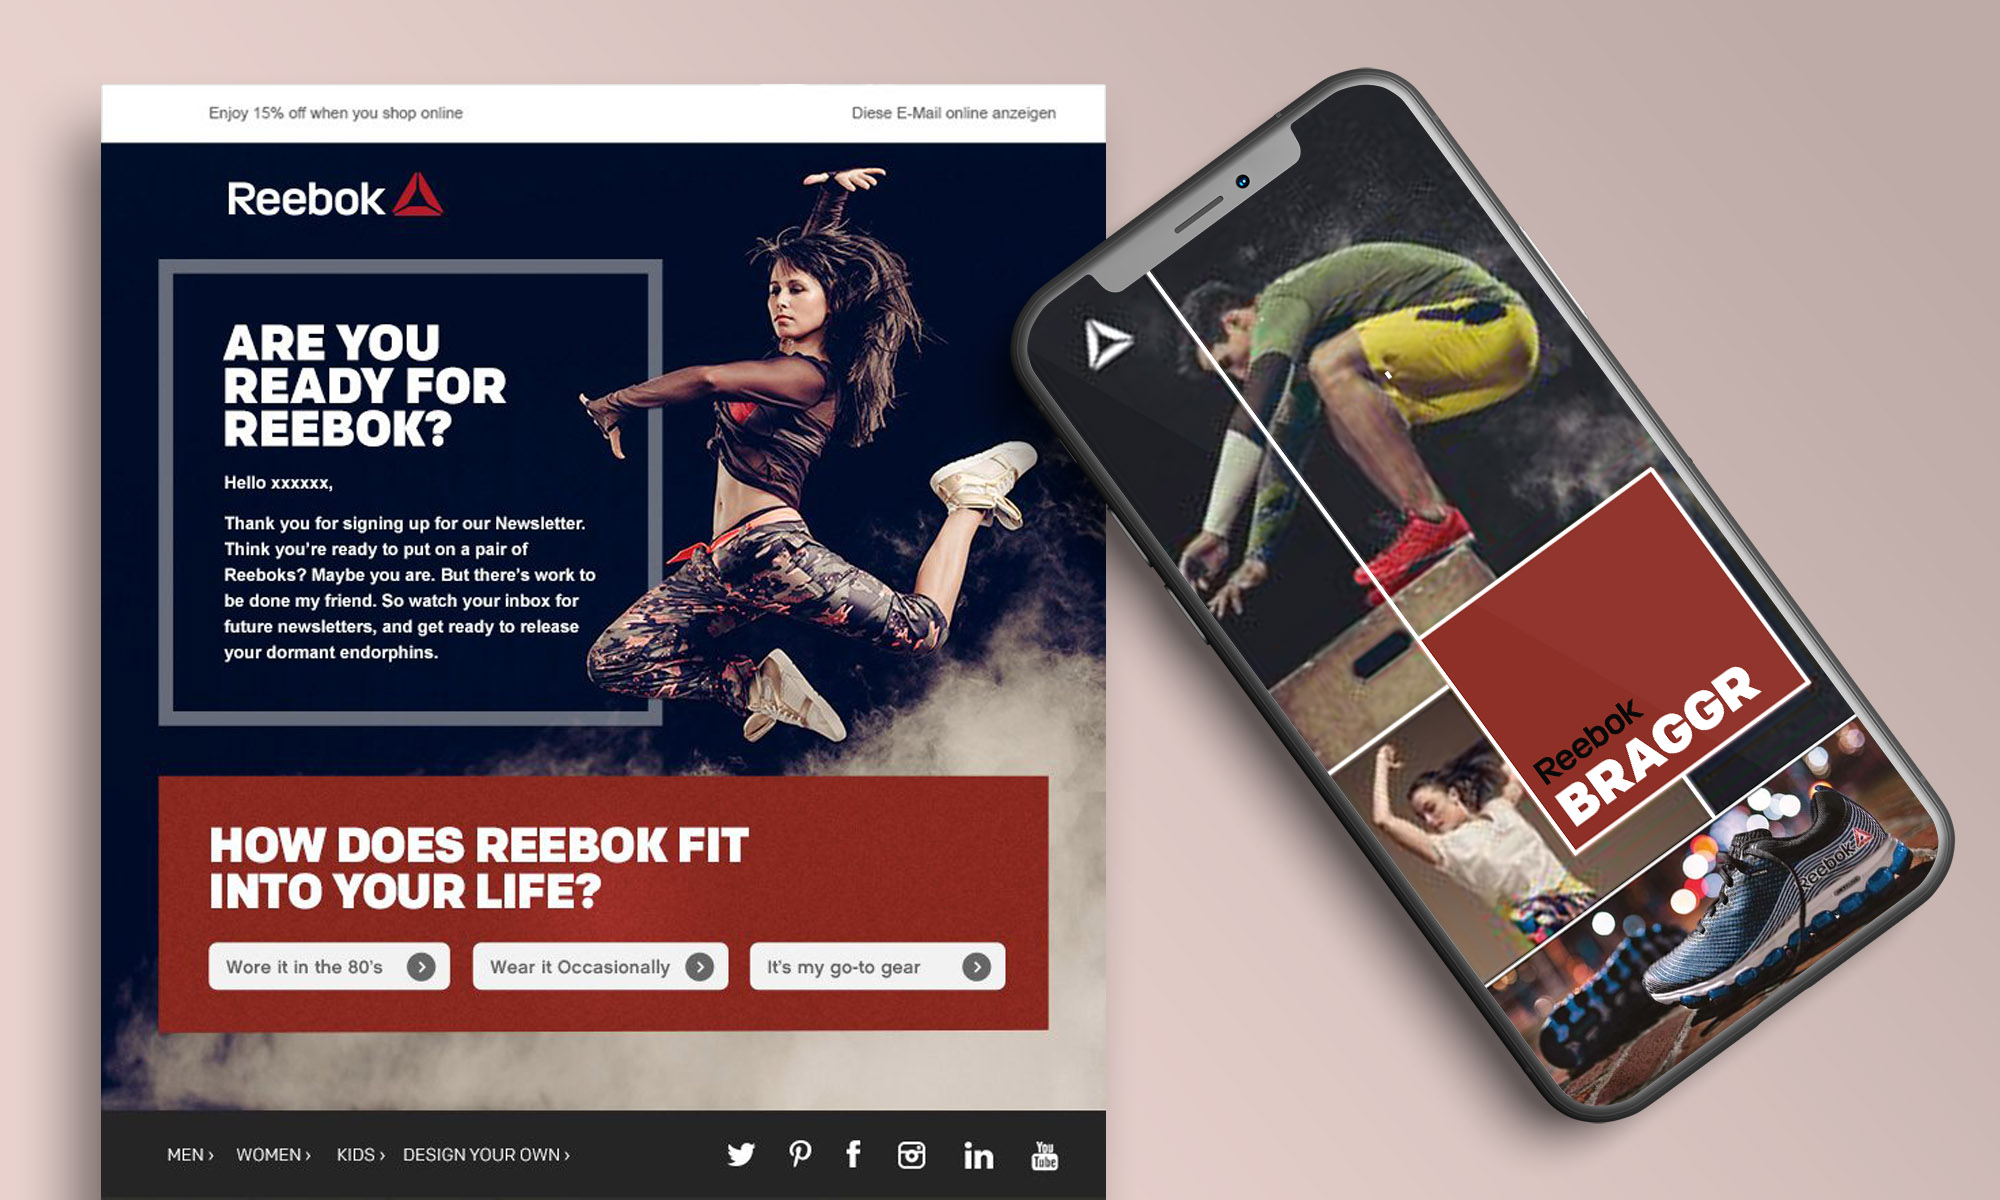 Reebok Onboarding Email and Website Design